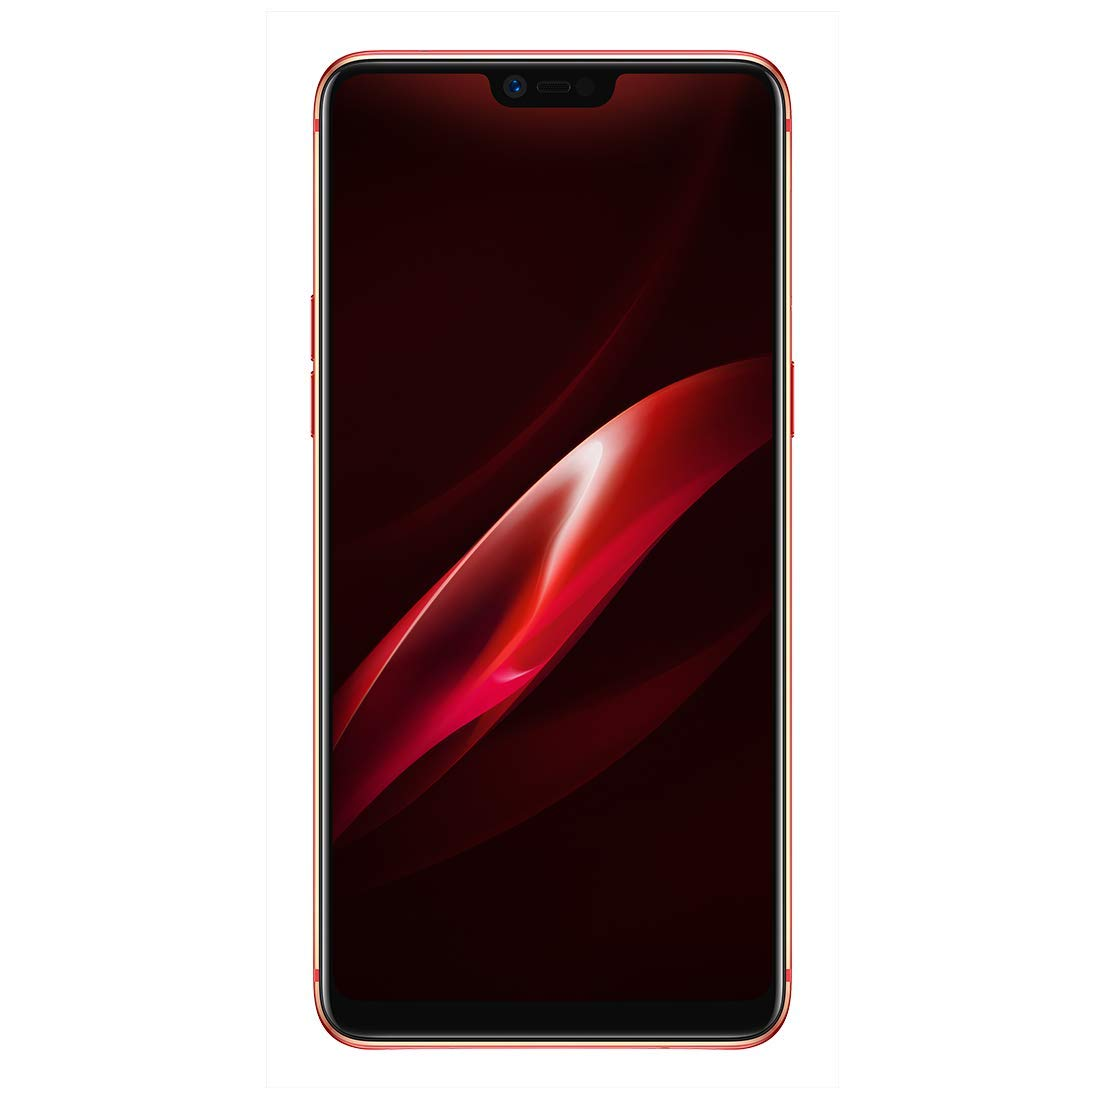 OPPO R15 Pro (Ruby Red, 6GB RAM, 128GB Storage)